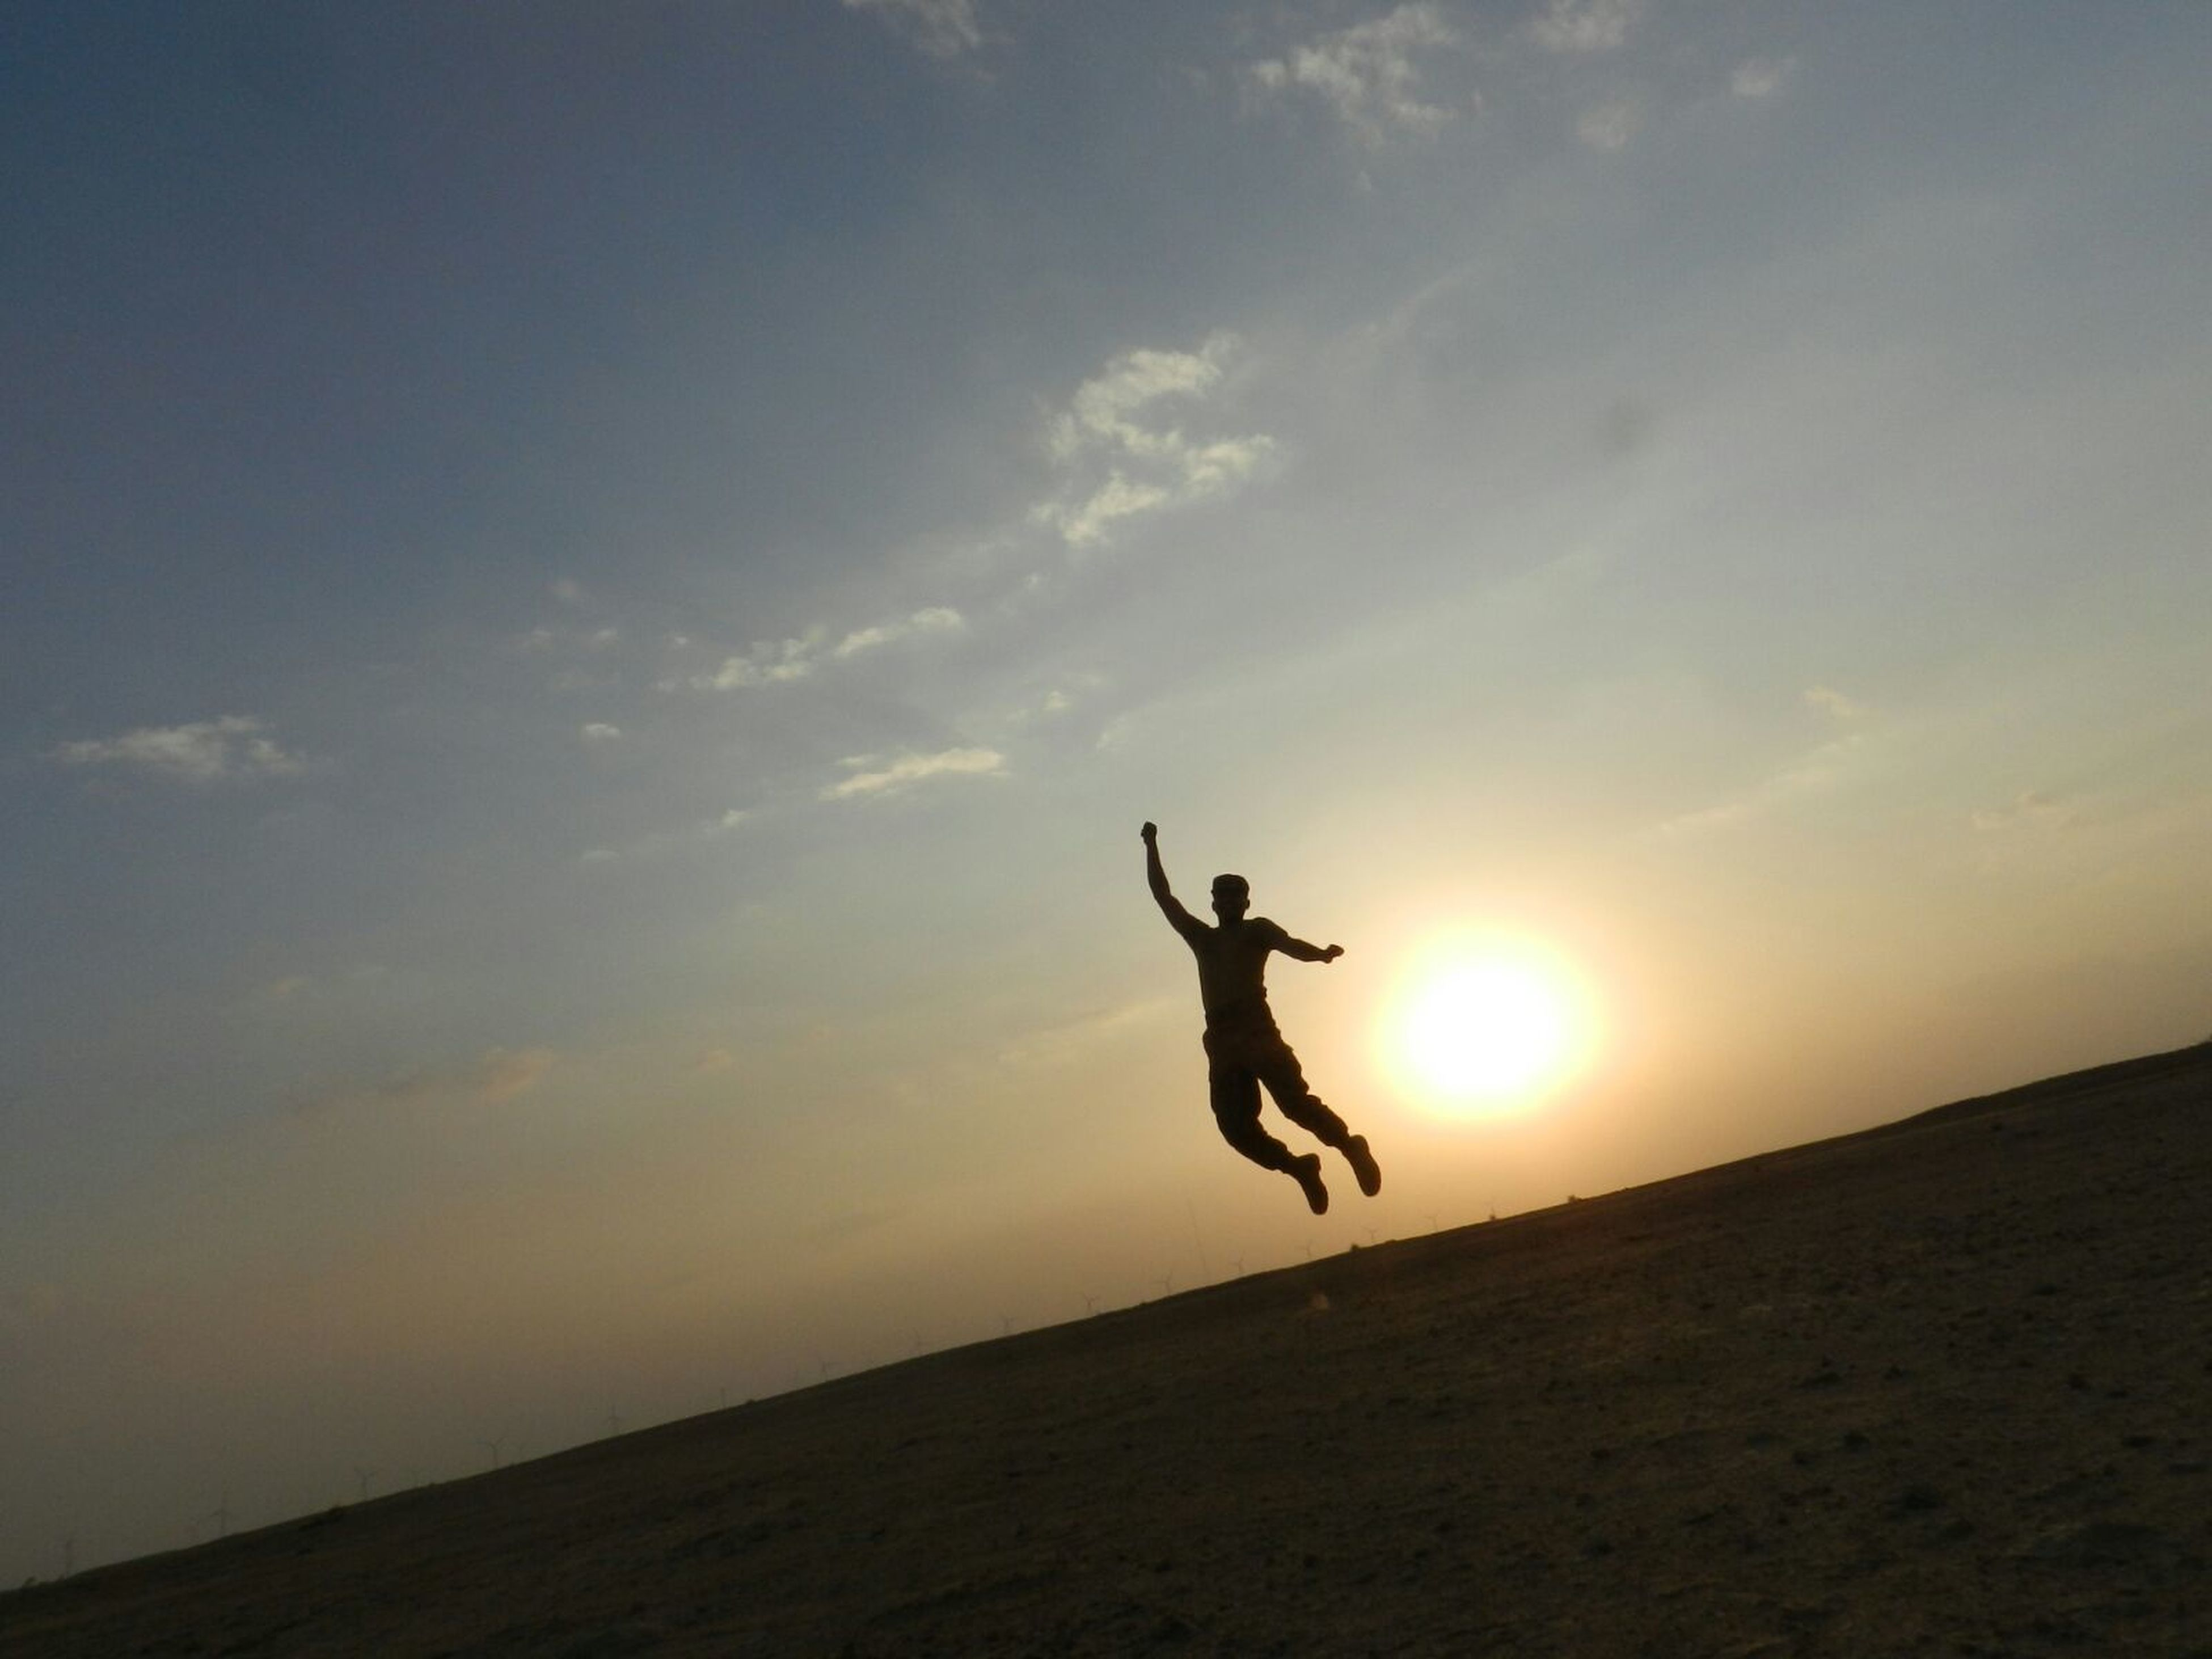 mid-air, silhouette, full length, sunset, jumping, sky, leisure activity, lifestyles, flying, sun, freedom, extreme sports, nature, arms outstretched, motion, landscape, sunlight, scenics